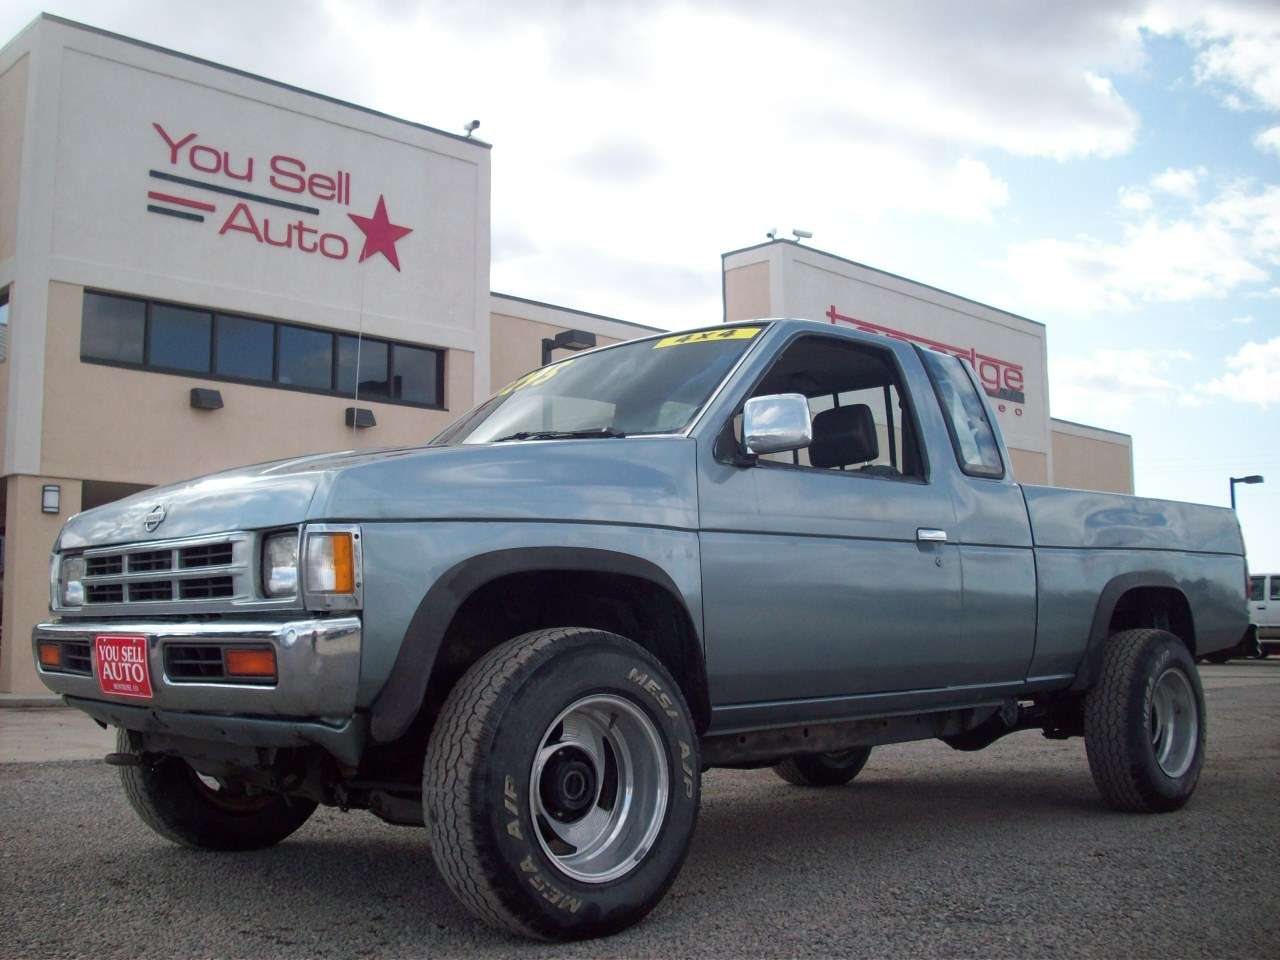 1995 Nissan 4X4 Pickup For Sale hd image